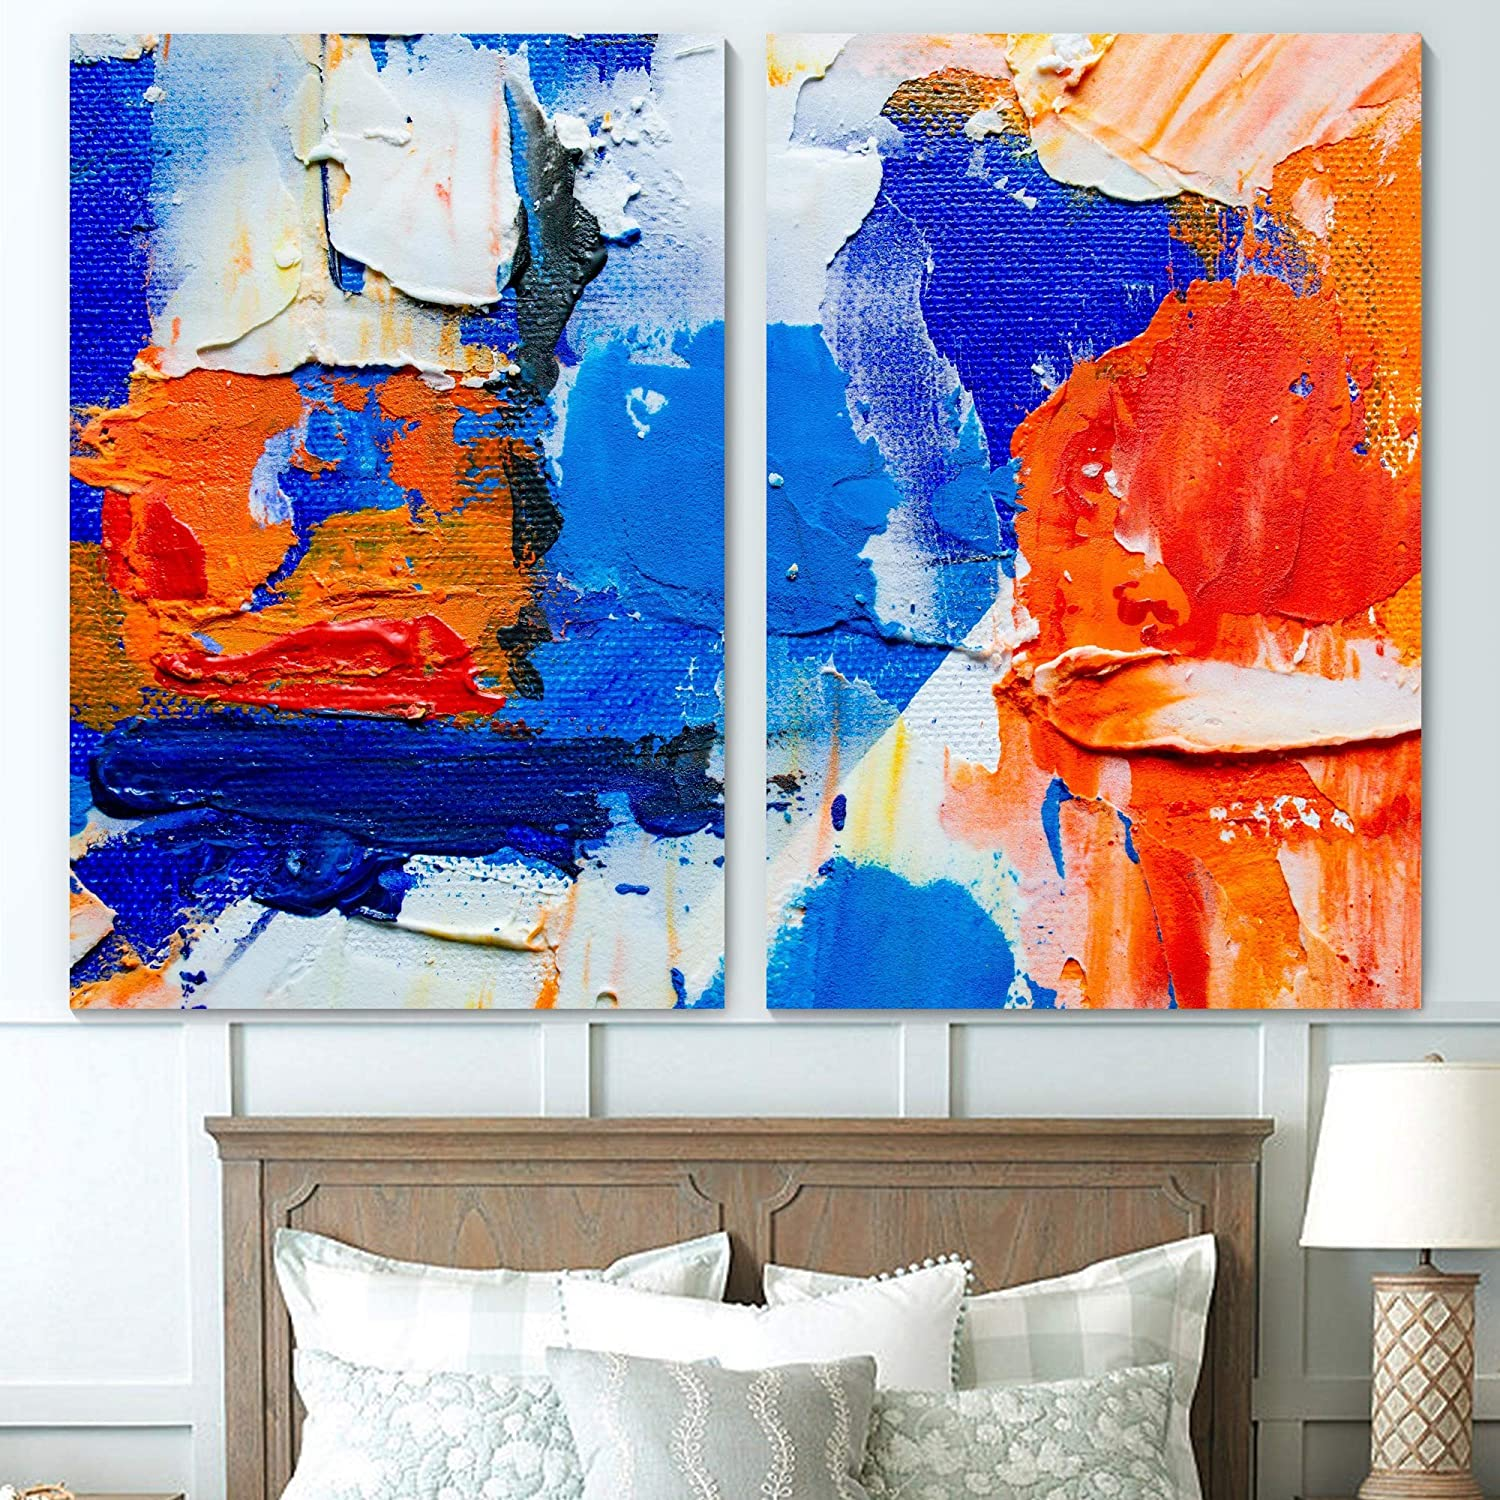 Sign Leader Vibrant Paintstrokes Wall Art Abstract Oil Painting Canvas Prints for Bedroom Living Room Modern Art - 24x36 x 2 Panels